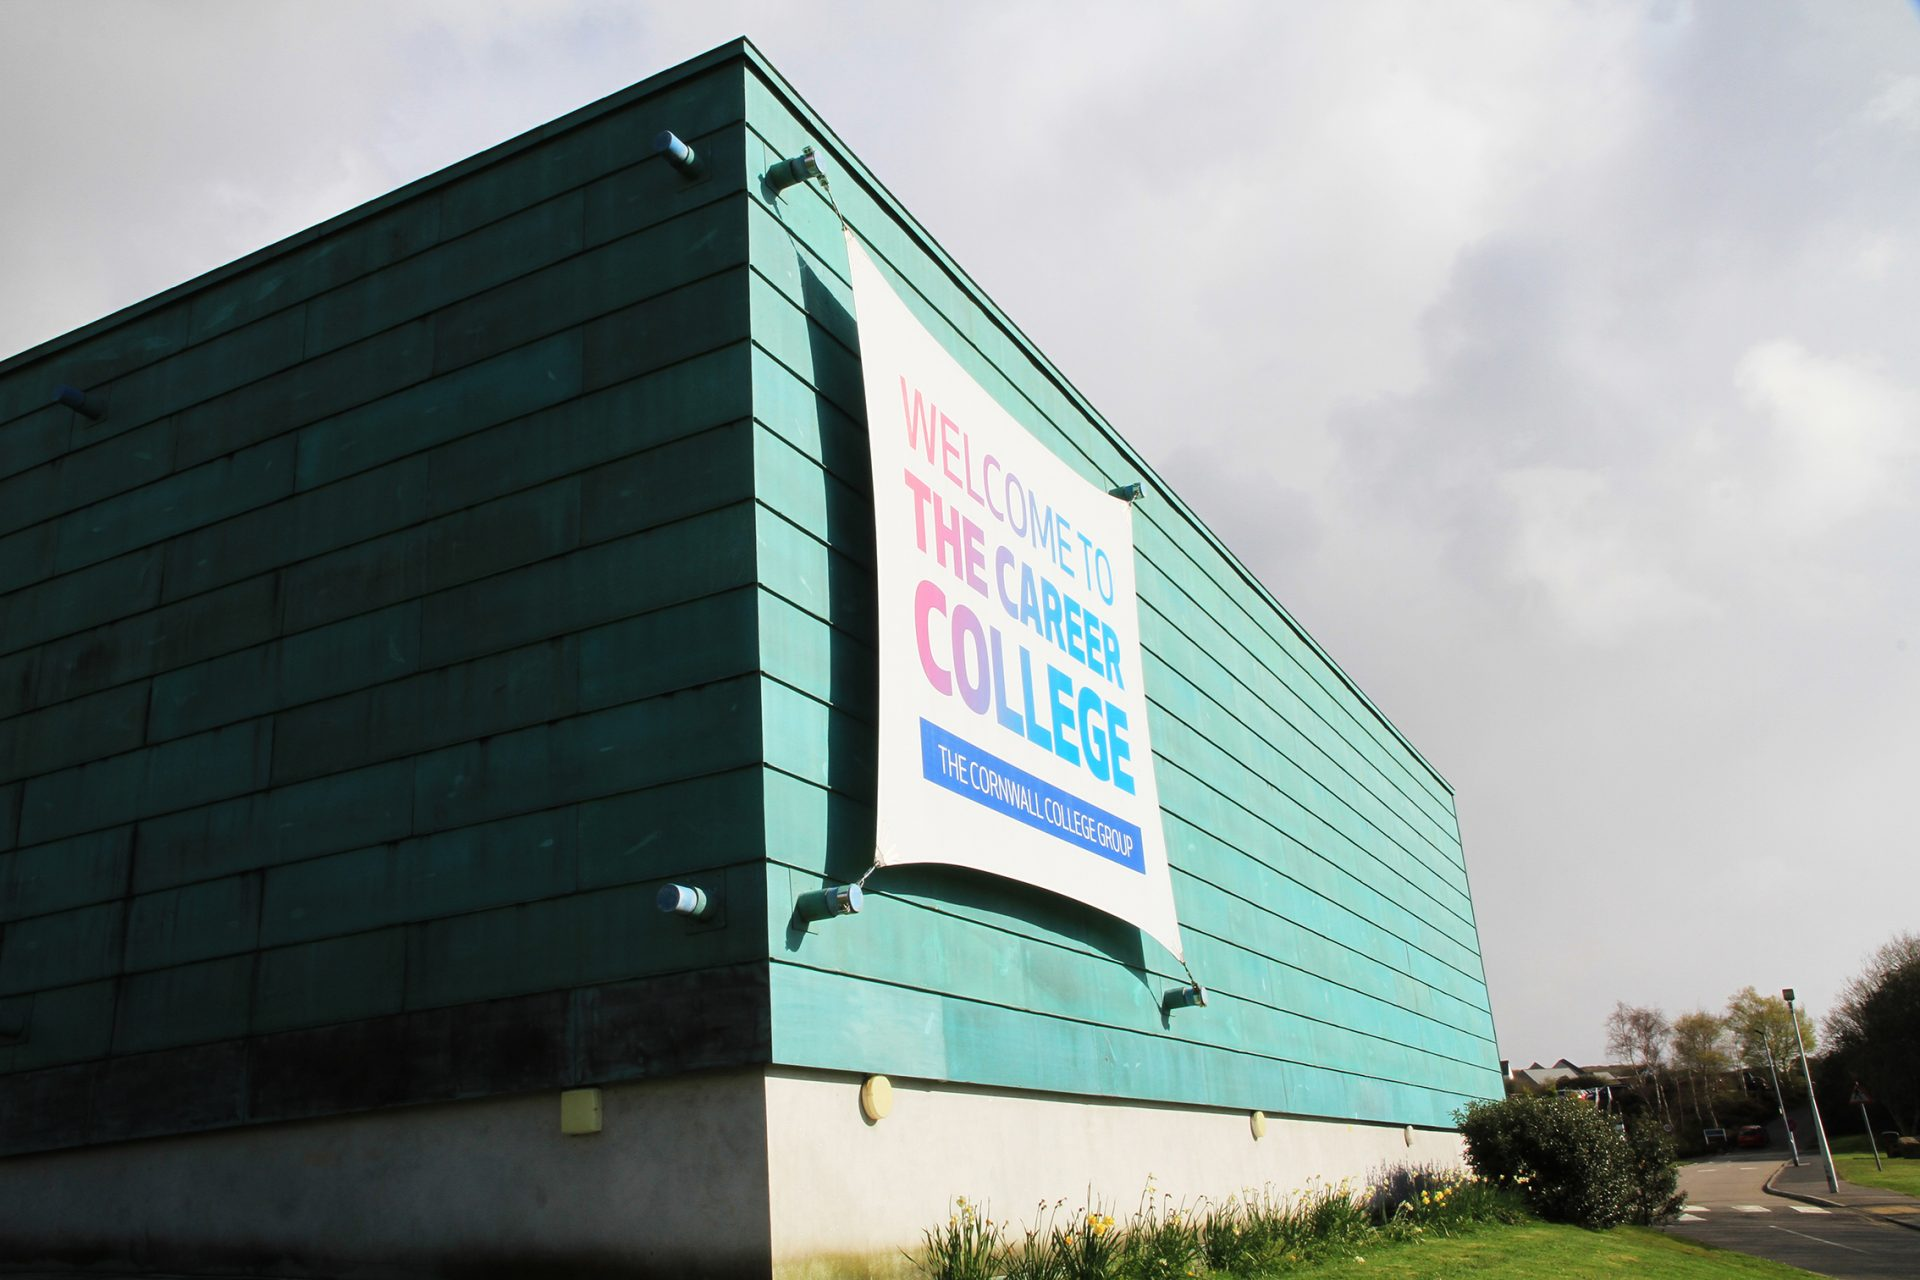 The Keay Theatre at Cornwall College St Austell